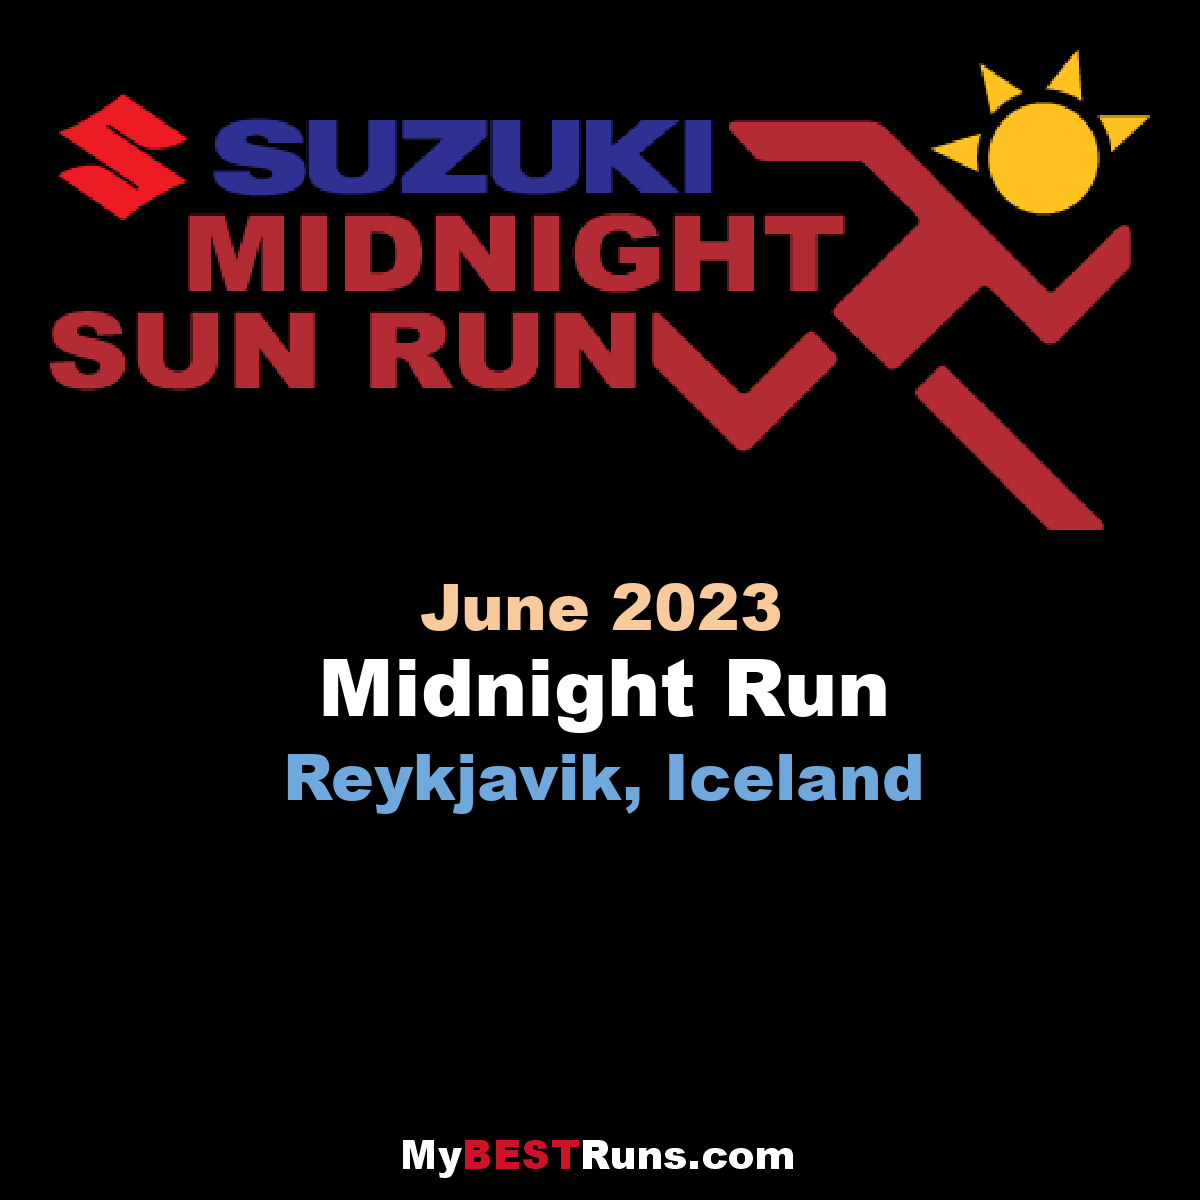 Midnight Run - Reykjavik, Iceland - 6/25/2020 - My BEST Runs